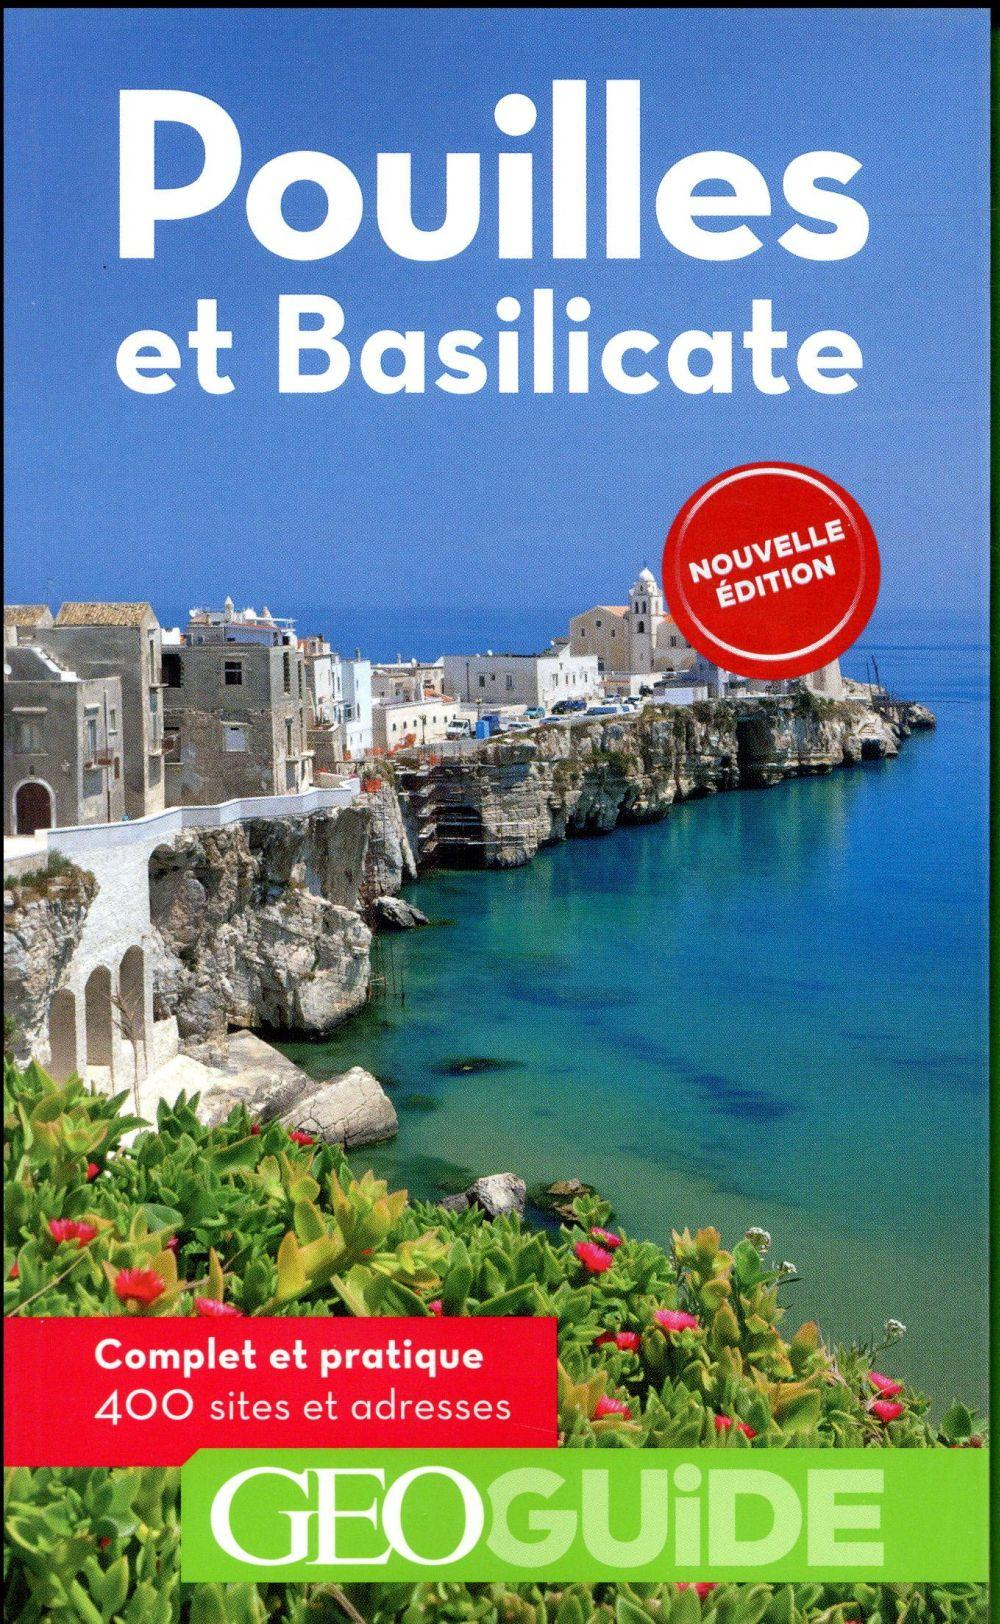 GEOGUIDE ; Pouilles et Basilicate  - Collectif Gallimard